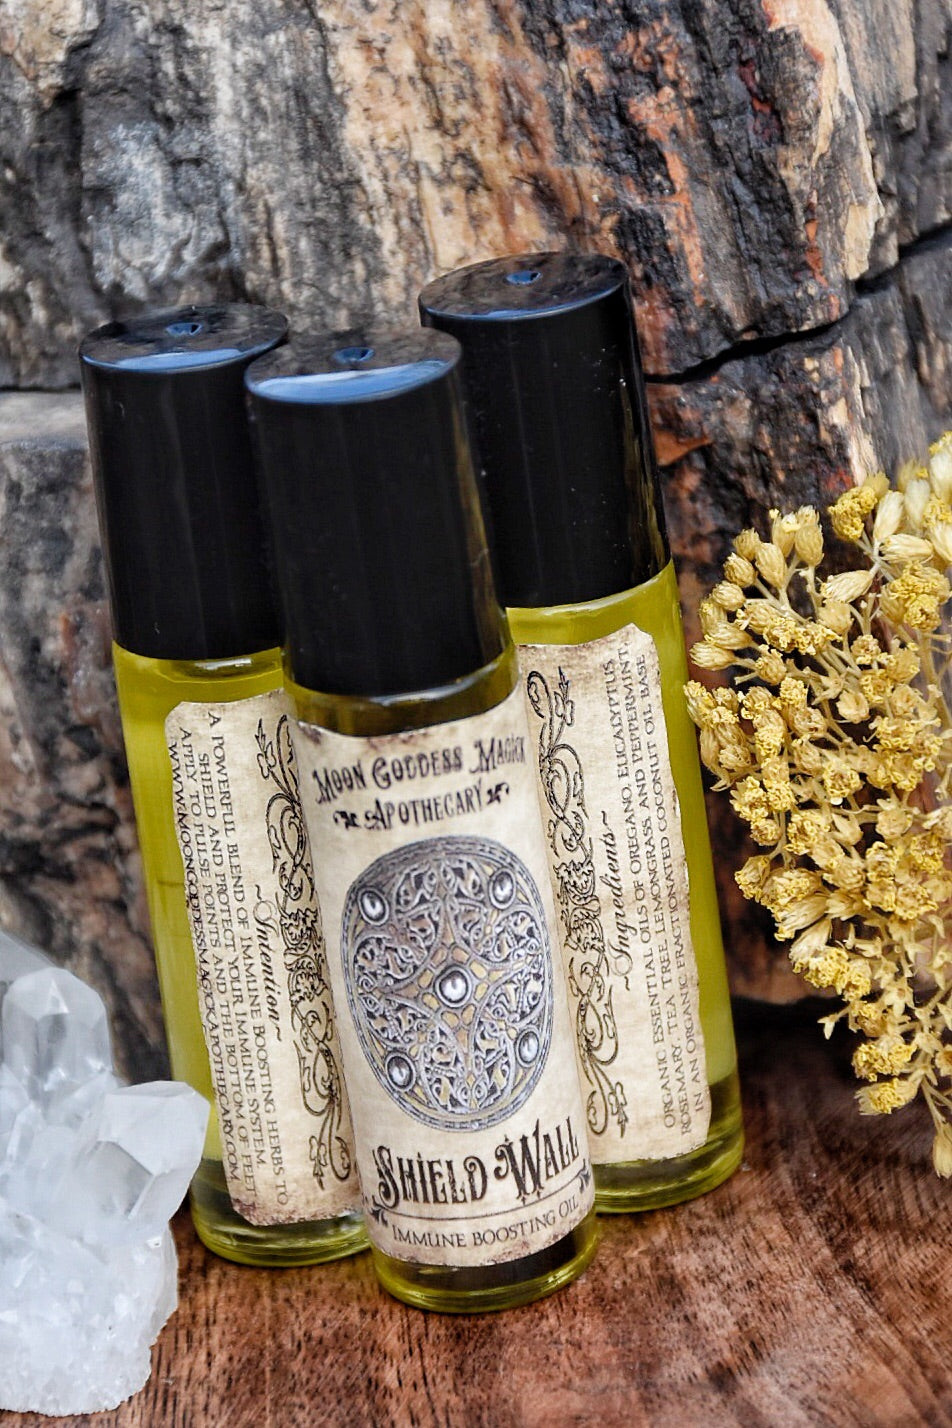 Shield Wall /// Organic Immune Boosting Essential Oil Blend /// Protection Oil /// 1/3oz Roll on Bottle - Moon Goddess Magick Apothecary